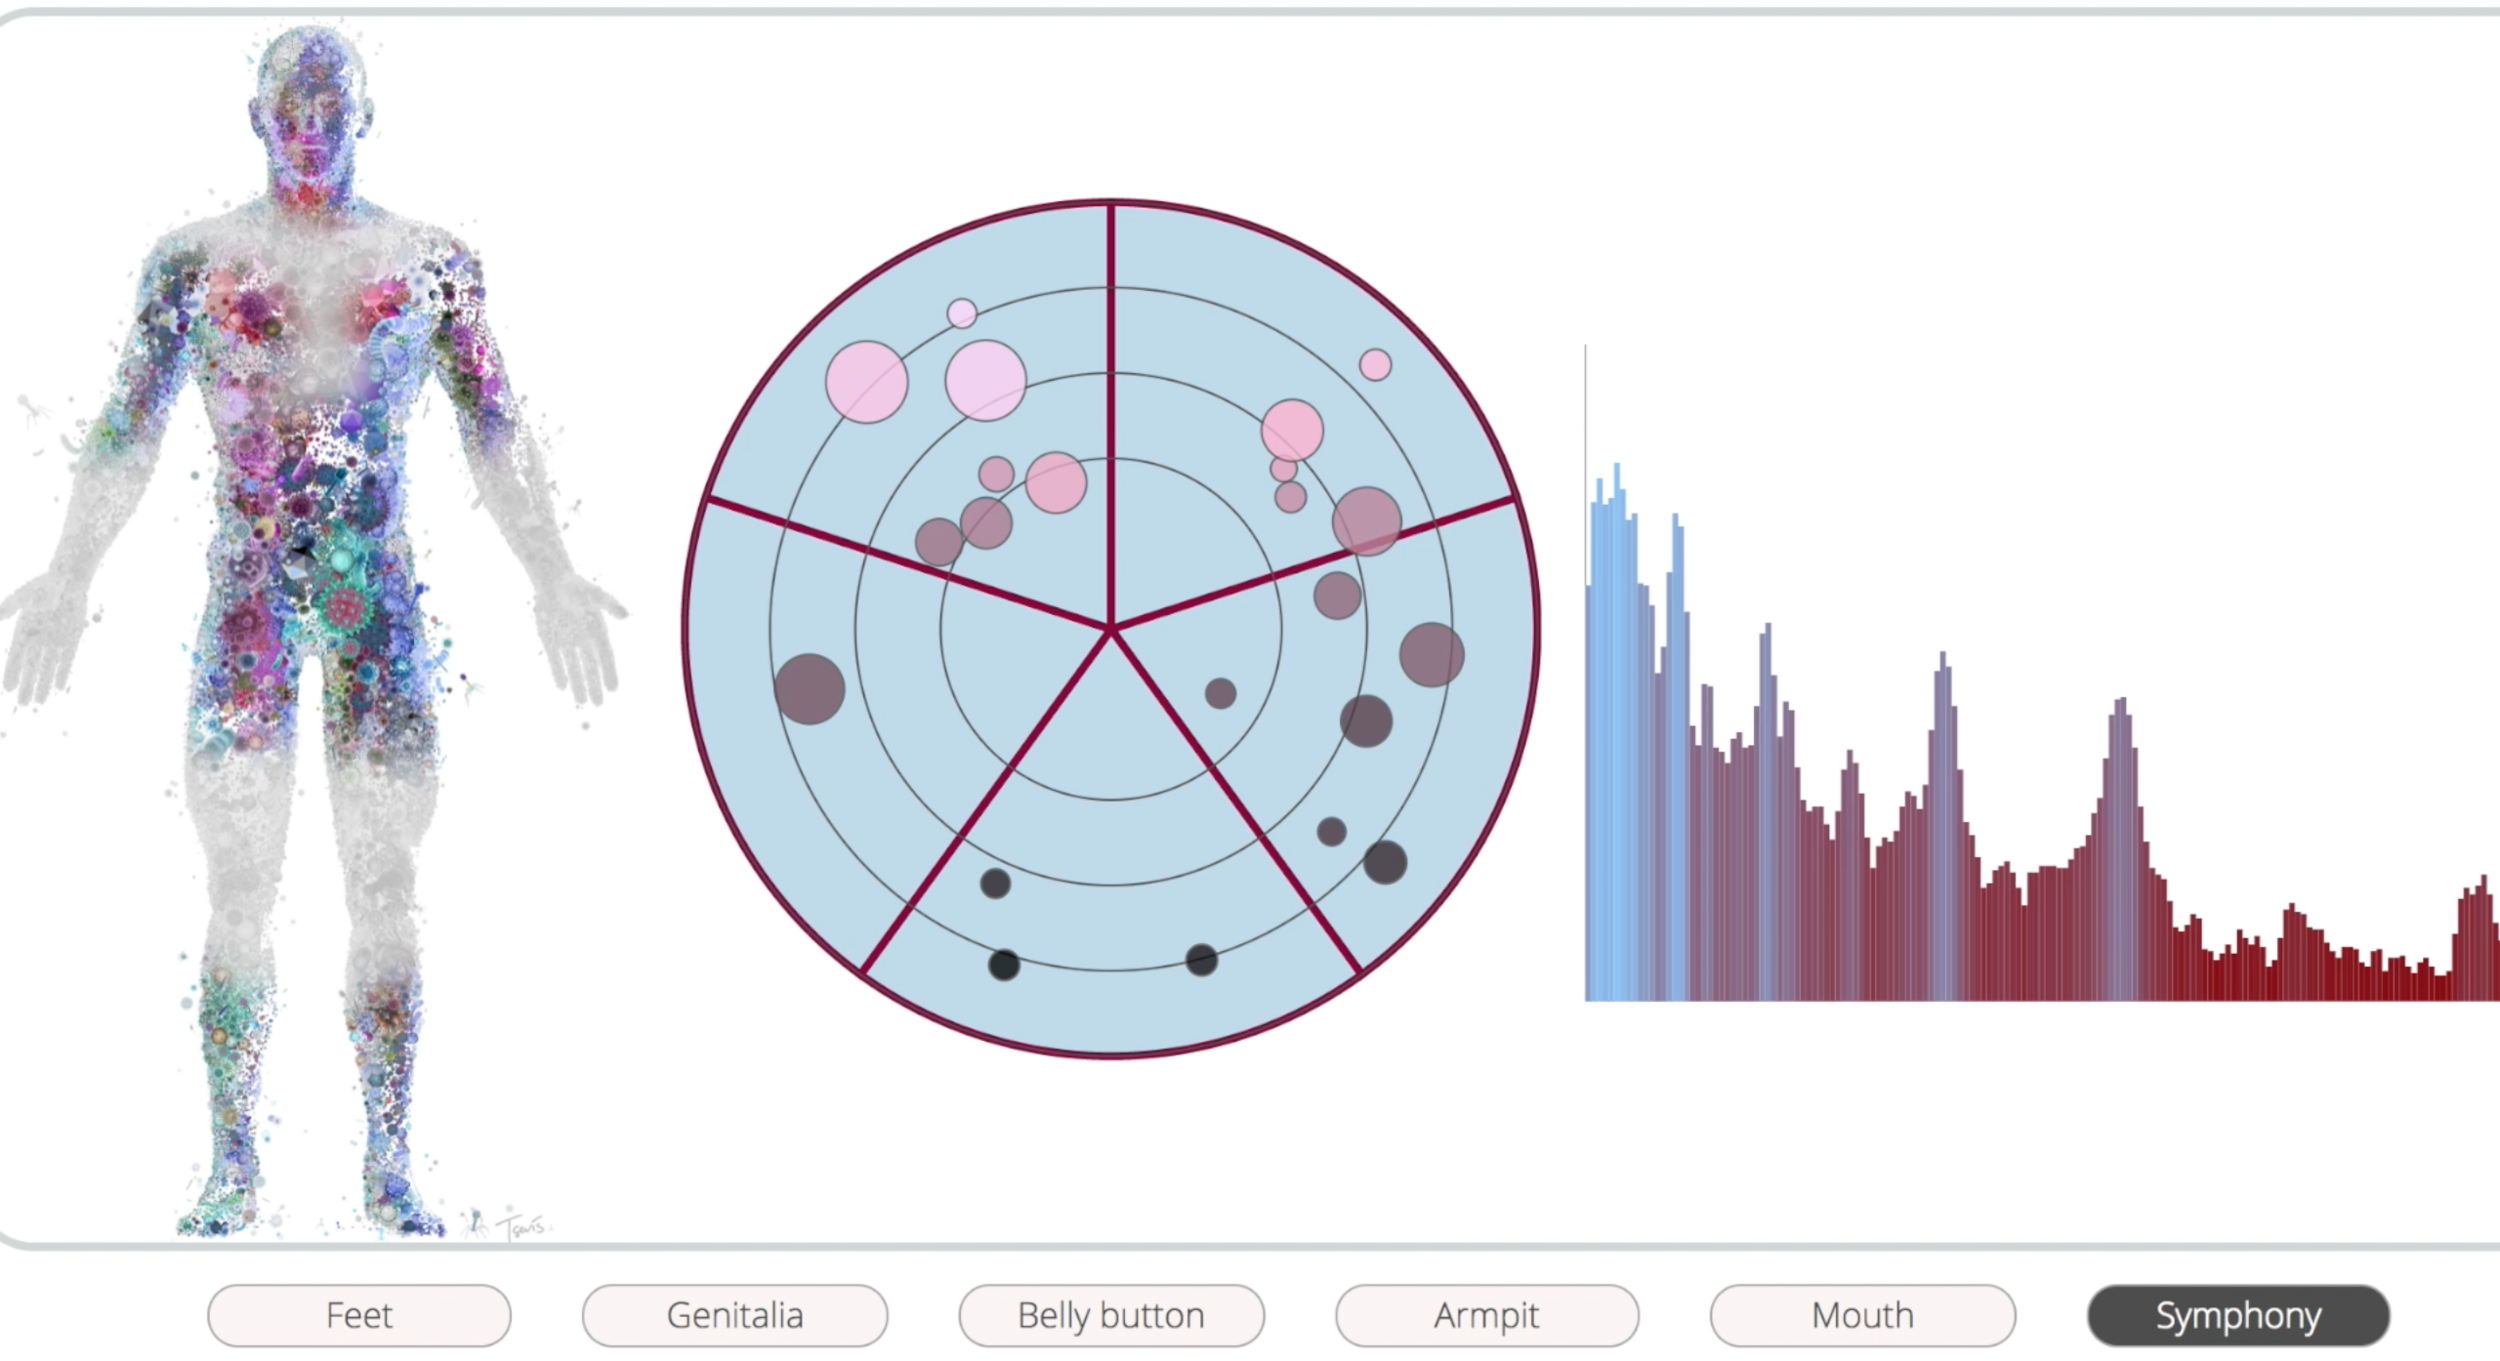 A demo of the sonification implementation can be viewed at http://biotabeats.com/visualization.html